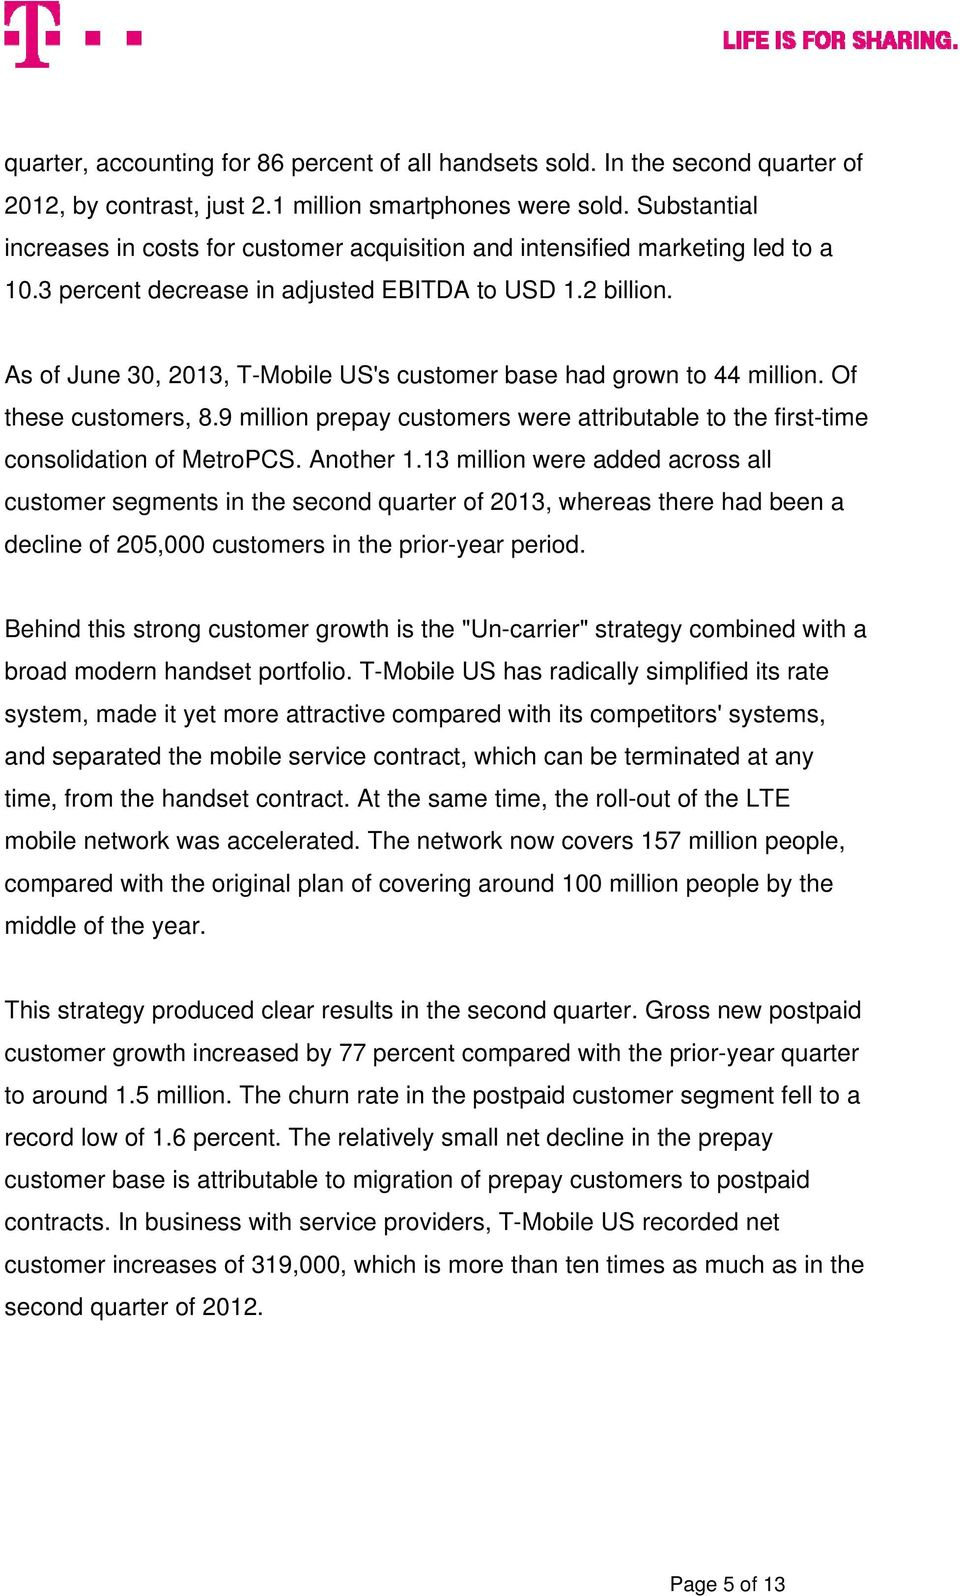 As of June 30, 2013, T-Mobile US's customer base had grown to 44 million. Of these customers, 8.9 million prepay customers were attributable to the first-time consolidation of MetroPCS. Another 1.